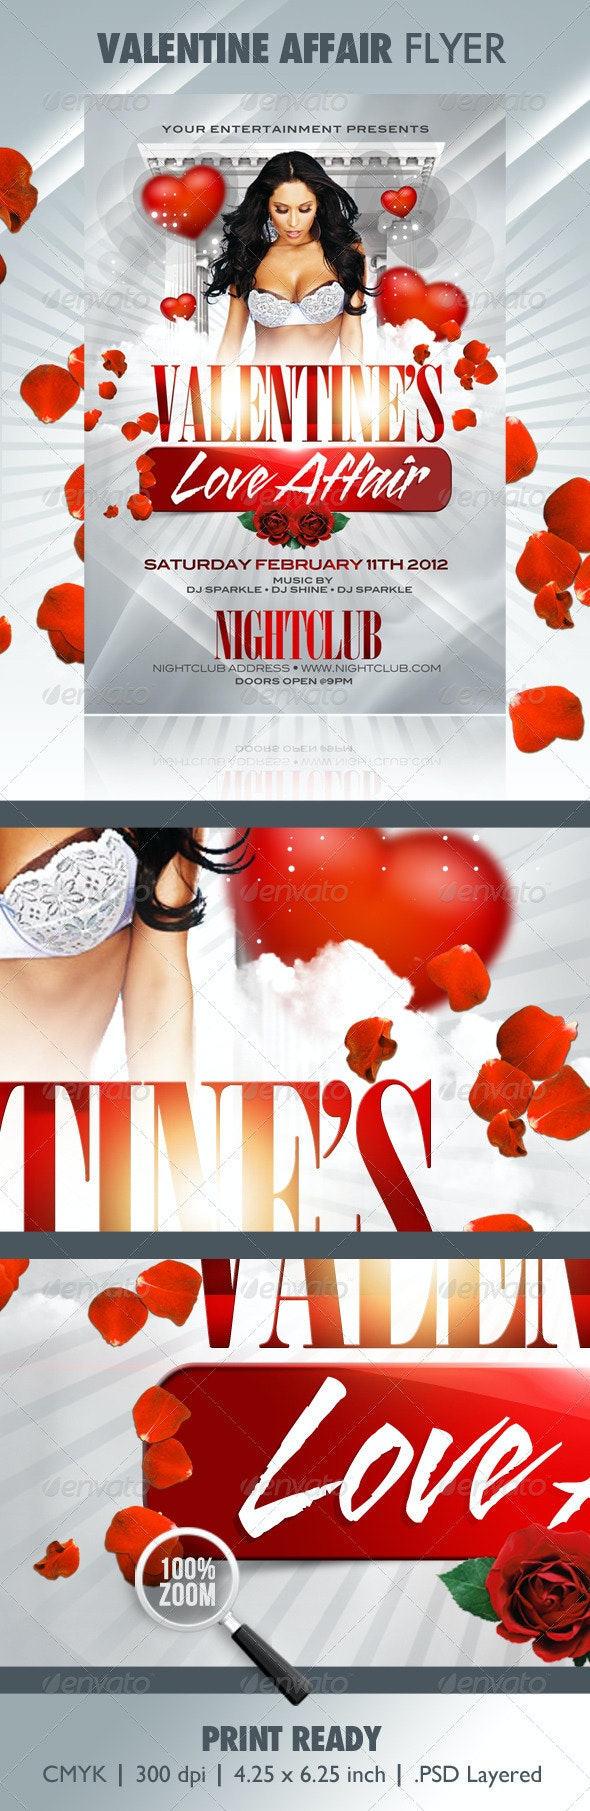 Valentine Affair Party Template - Clubs & Parties Events